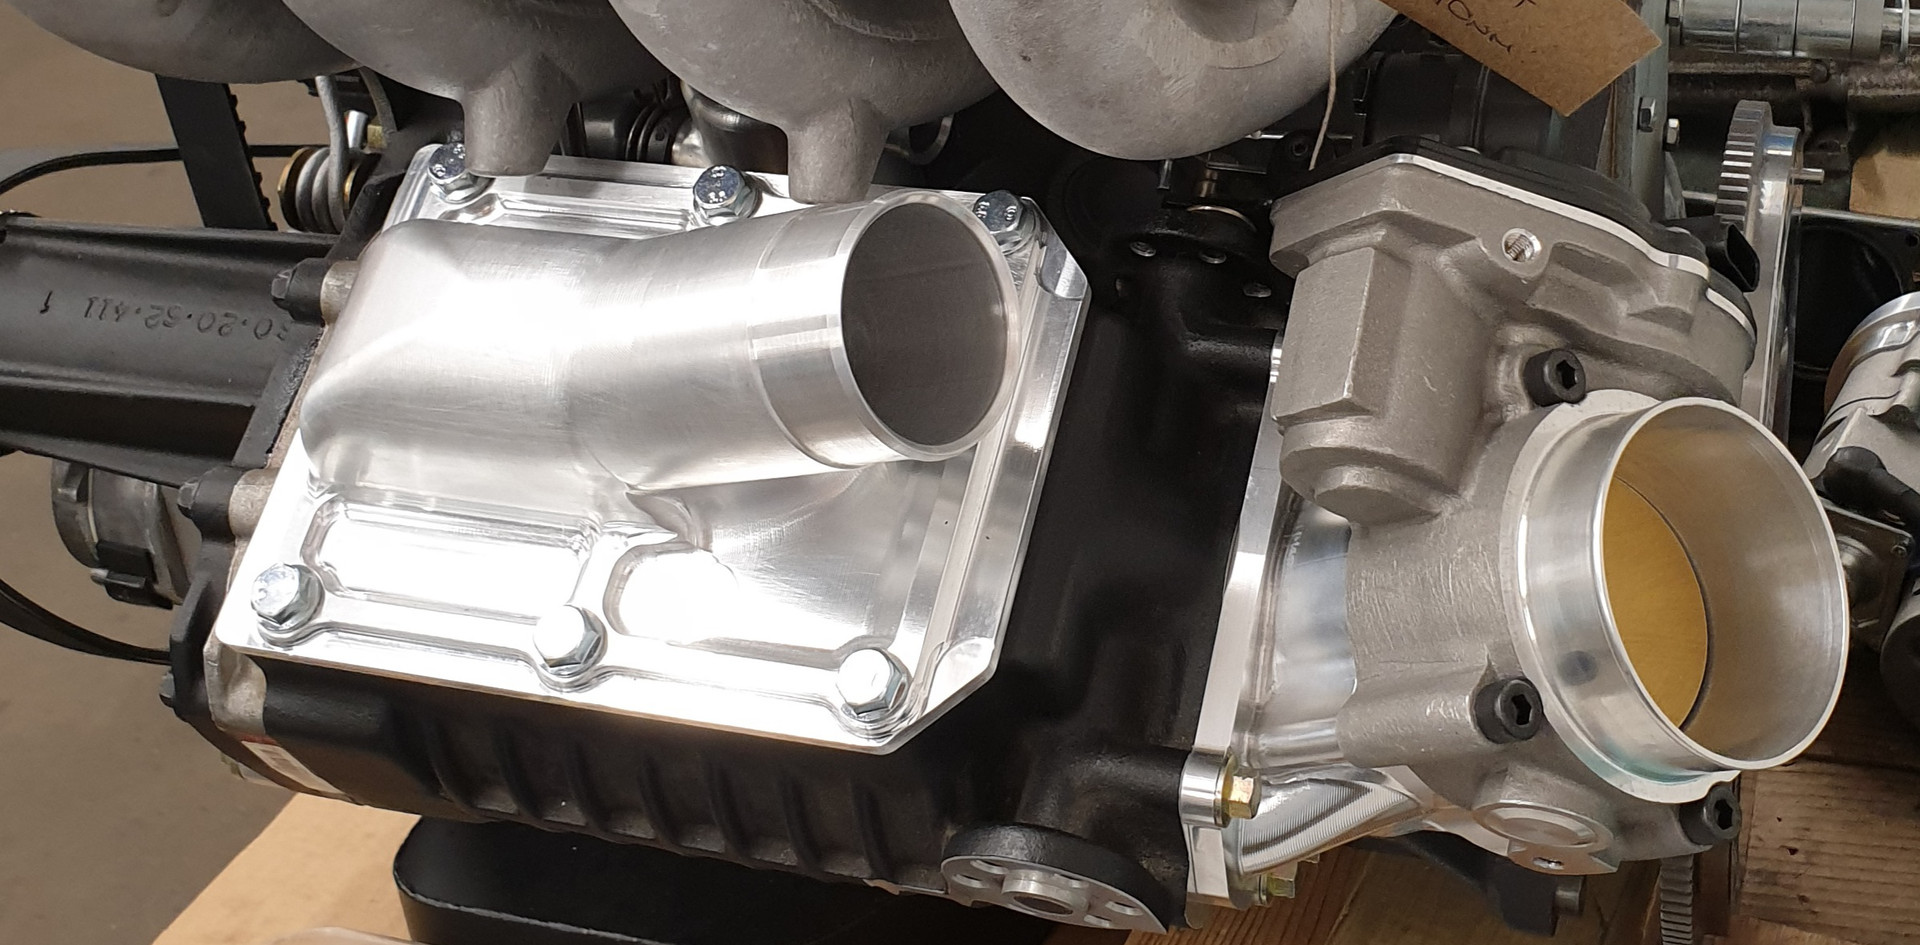 Supercharger assembled with inlet and outlet developed parts